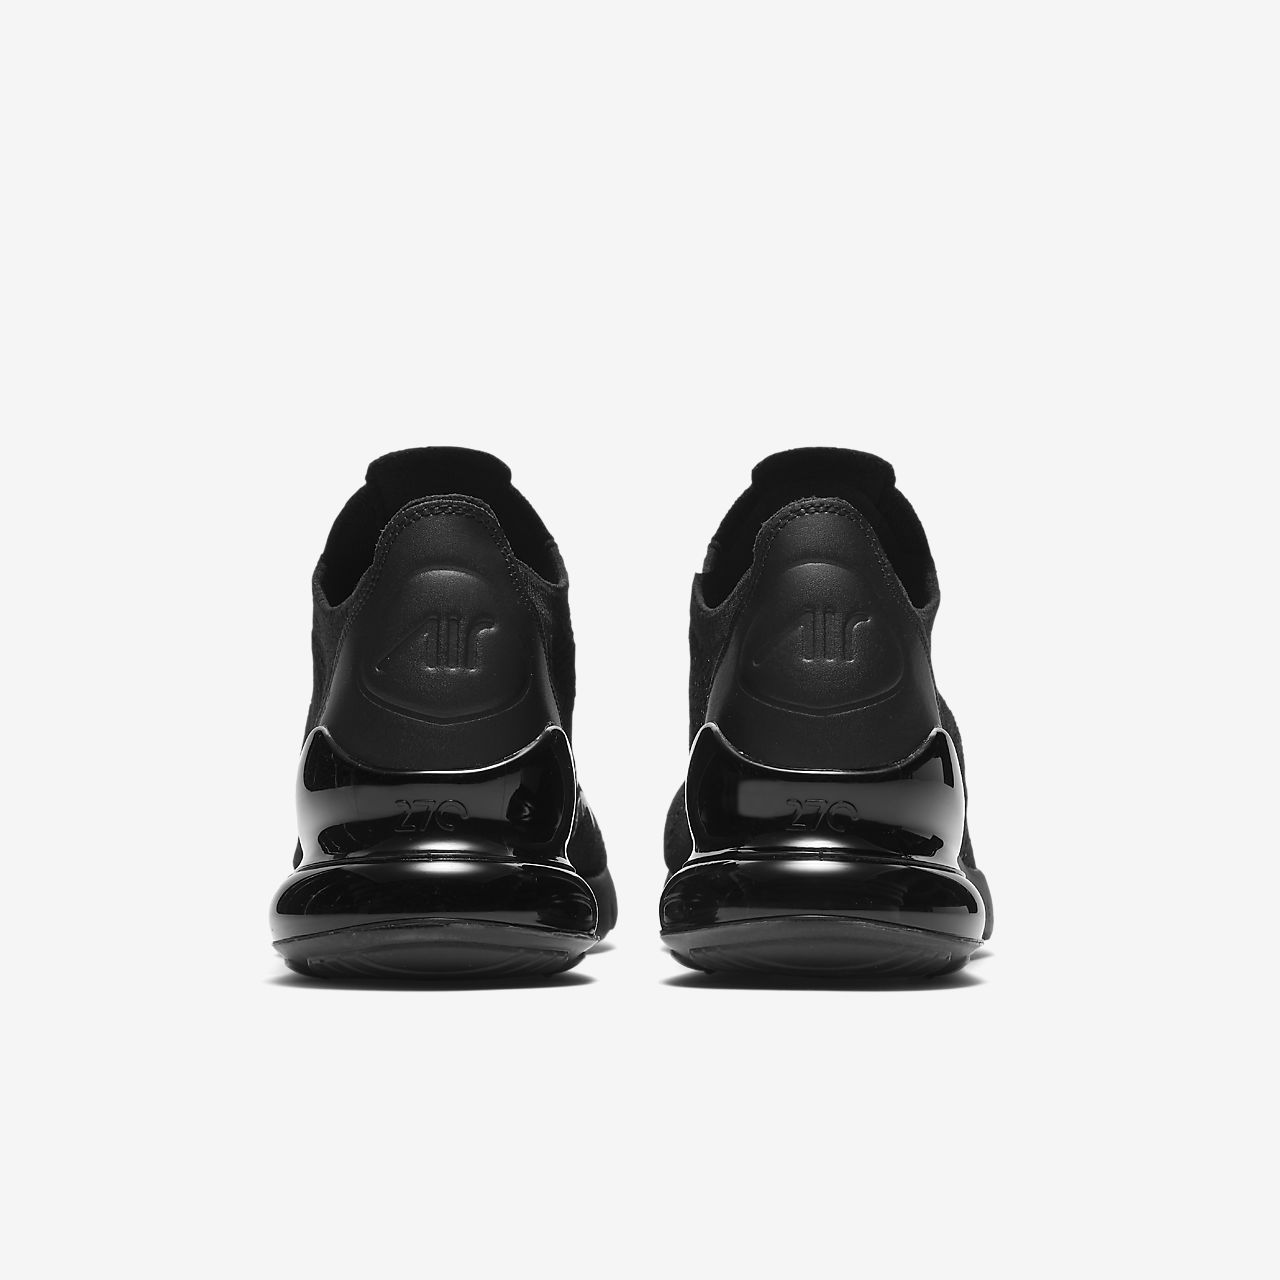 Nike Air Max 270 Flyknit Triple Black AO1023 005 Release